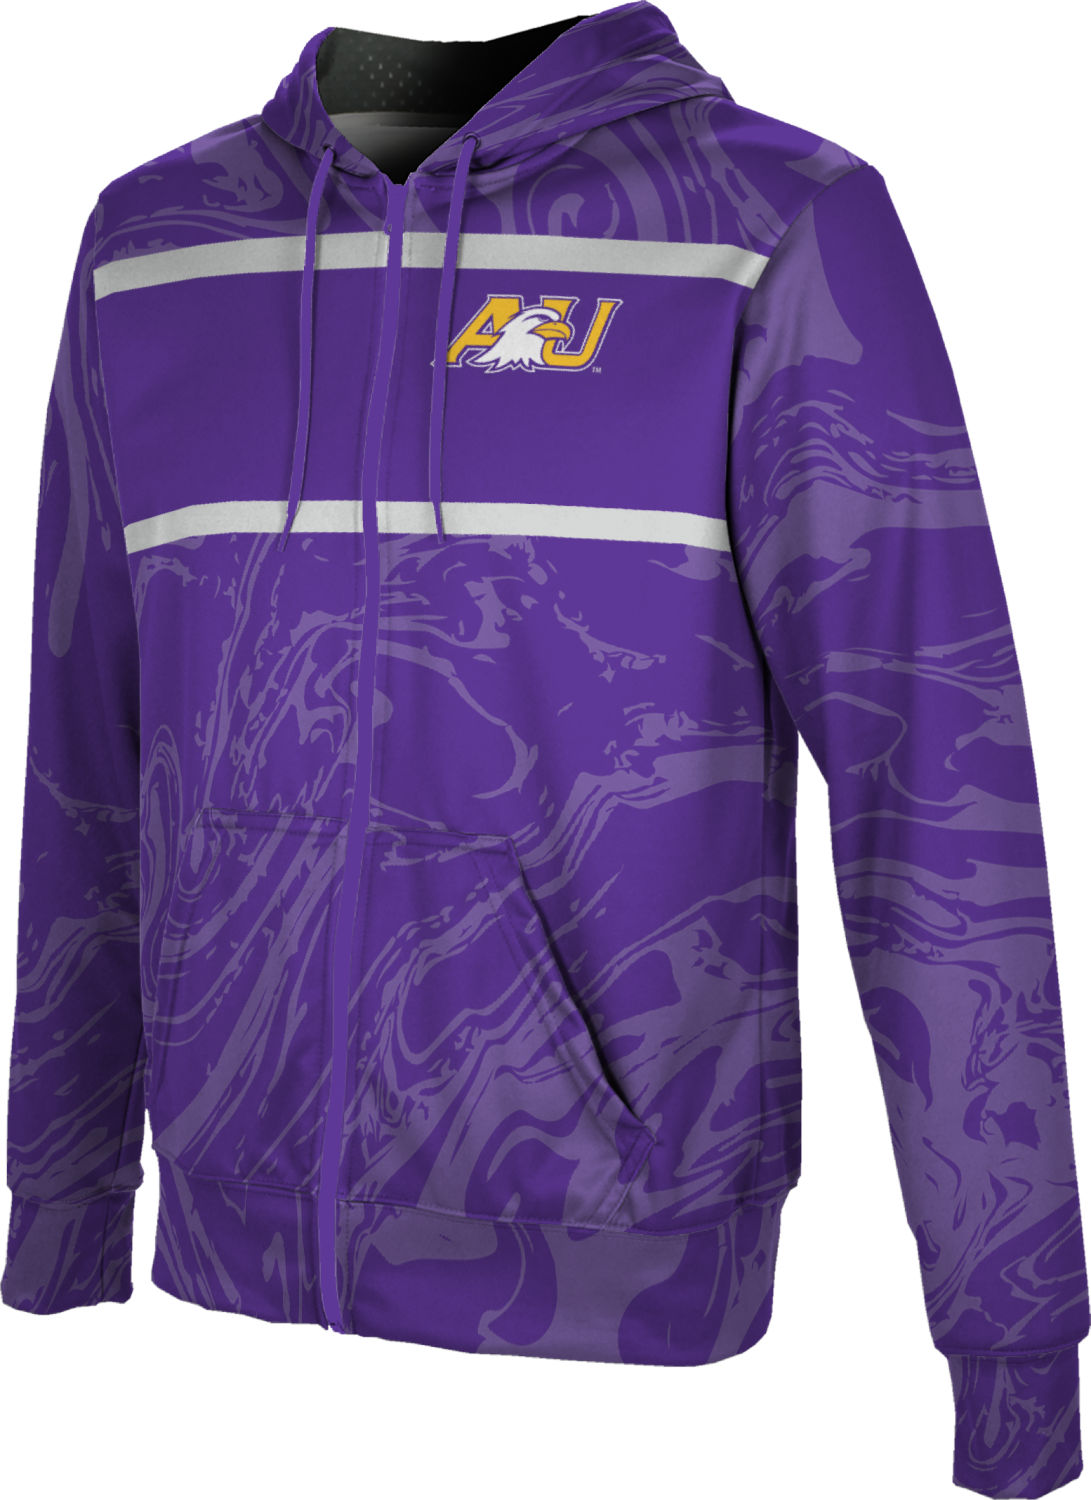 ProSphere Ashland University Boys Full Zip Hoodie Ripple